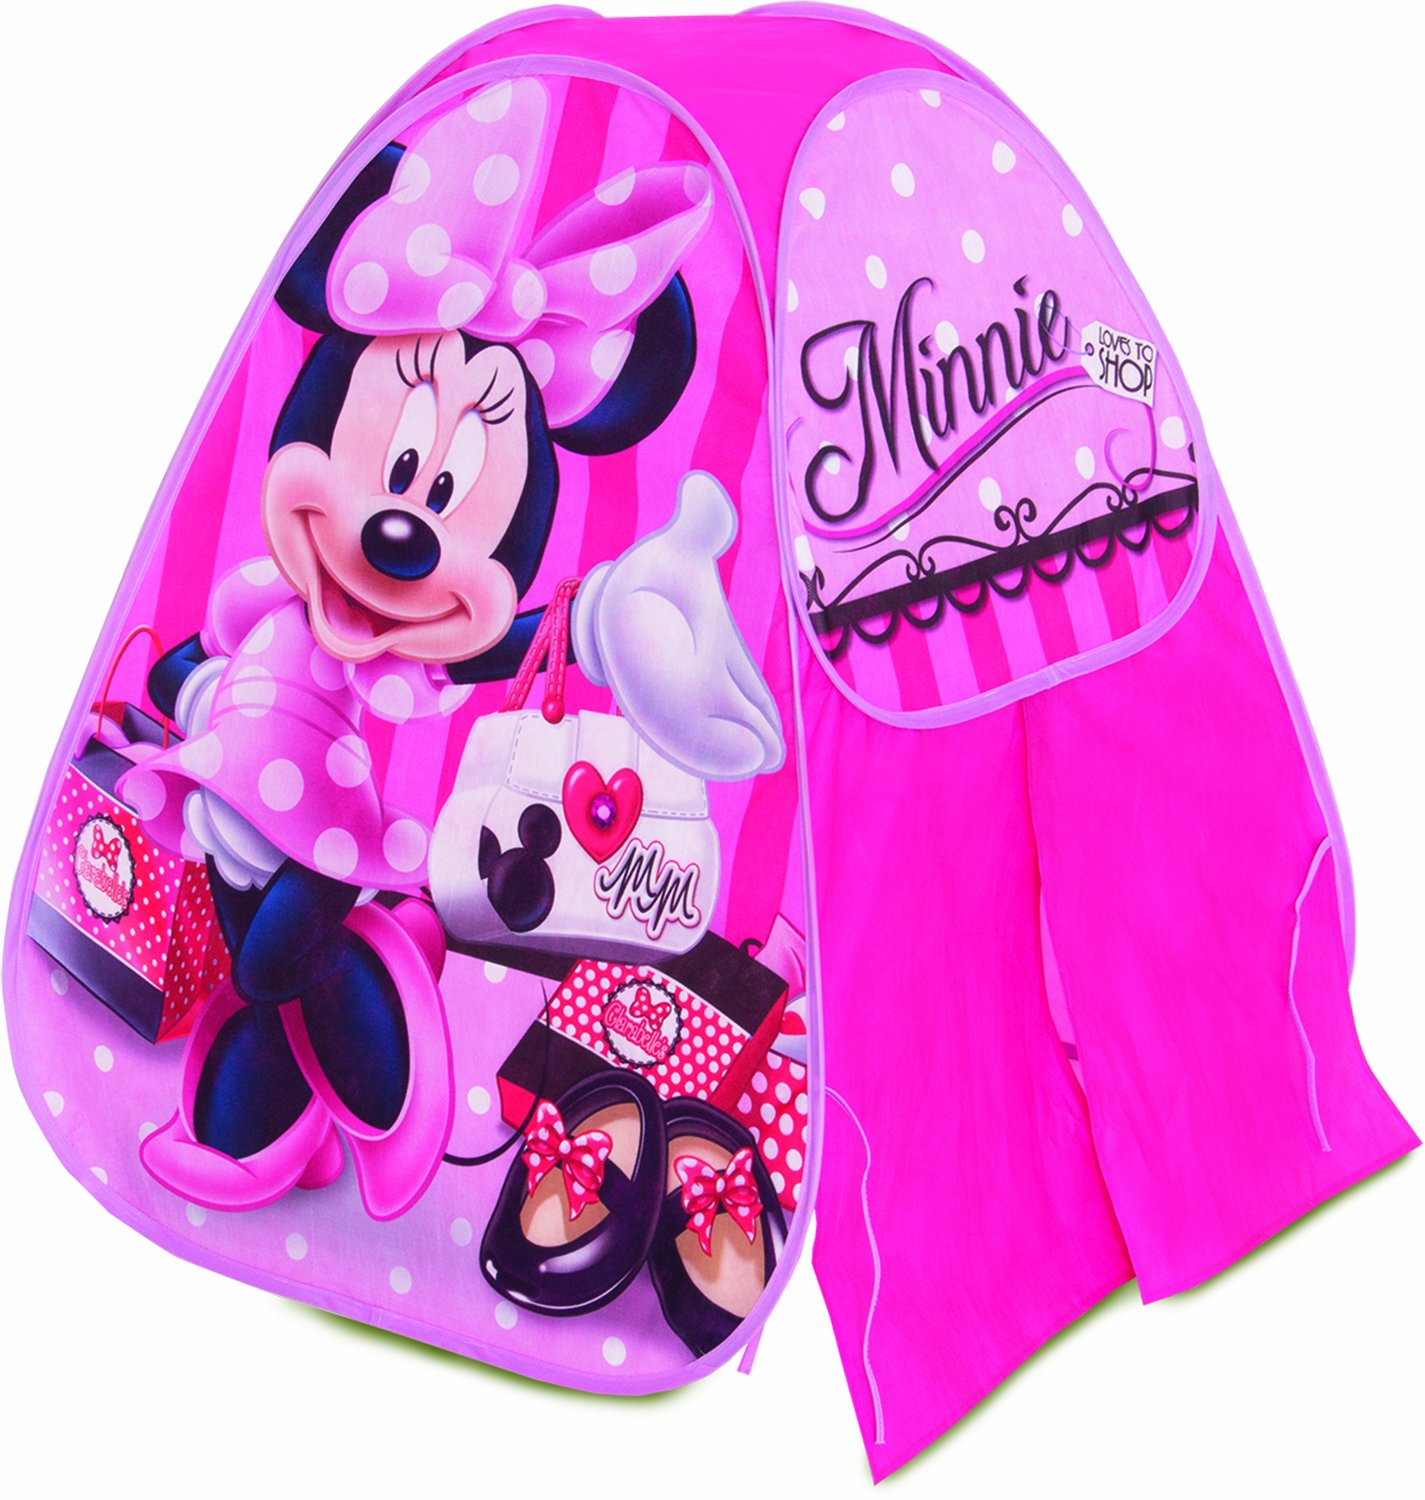 Playhut Minnie Camp N Play Tent by Playhut (English Manual) günstig online kaufen